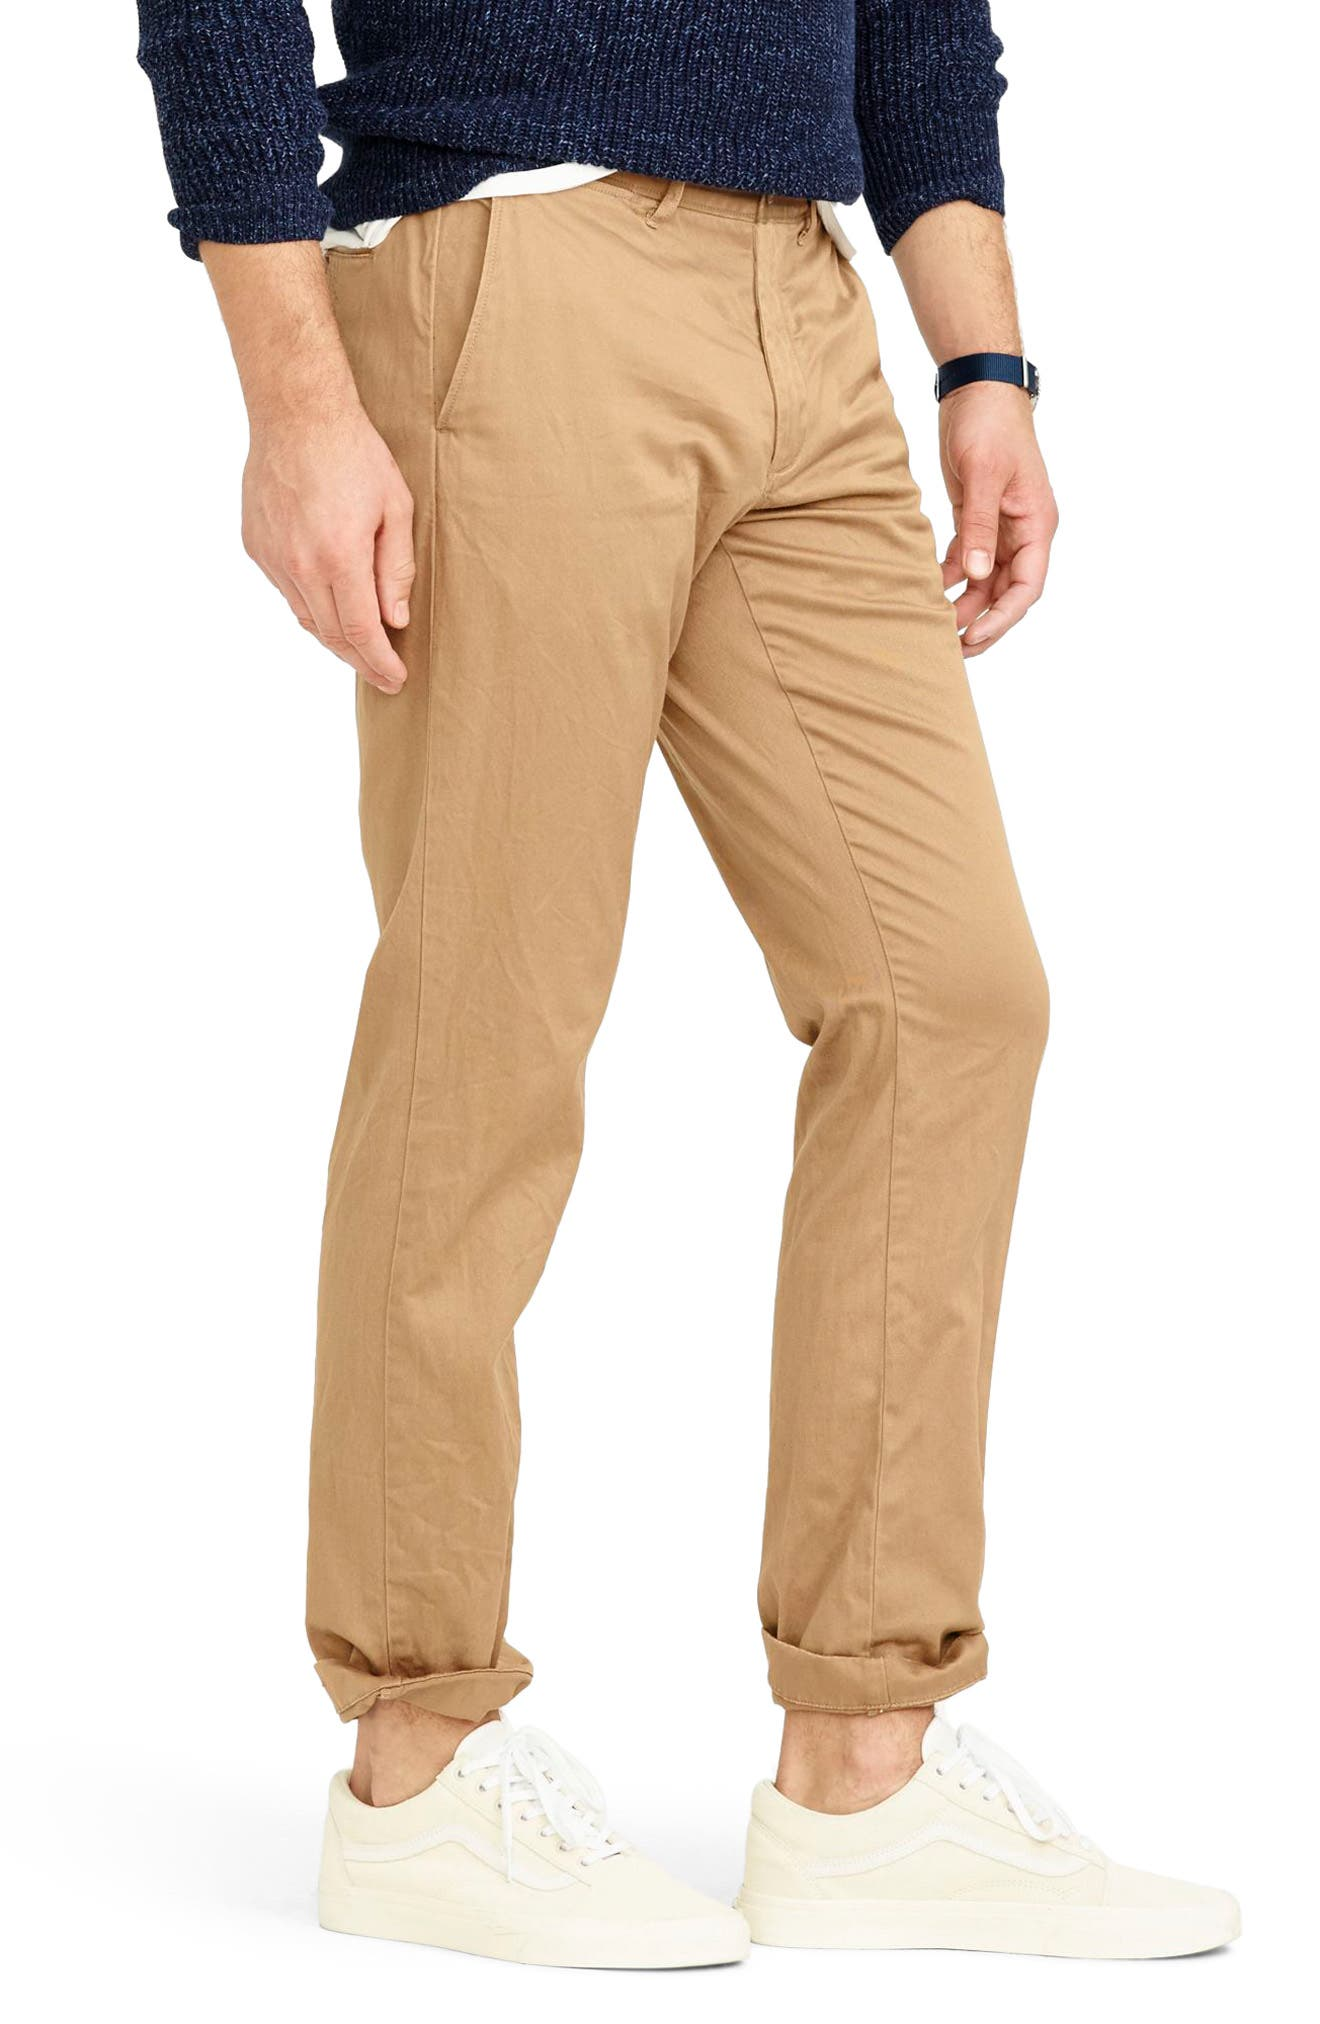 484 Slim Fit Stretch Chino Pants,                             Alternate thumbnail 28, color,